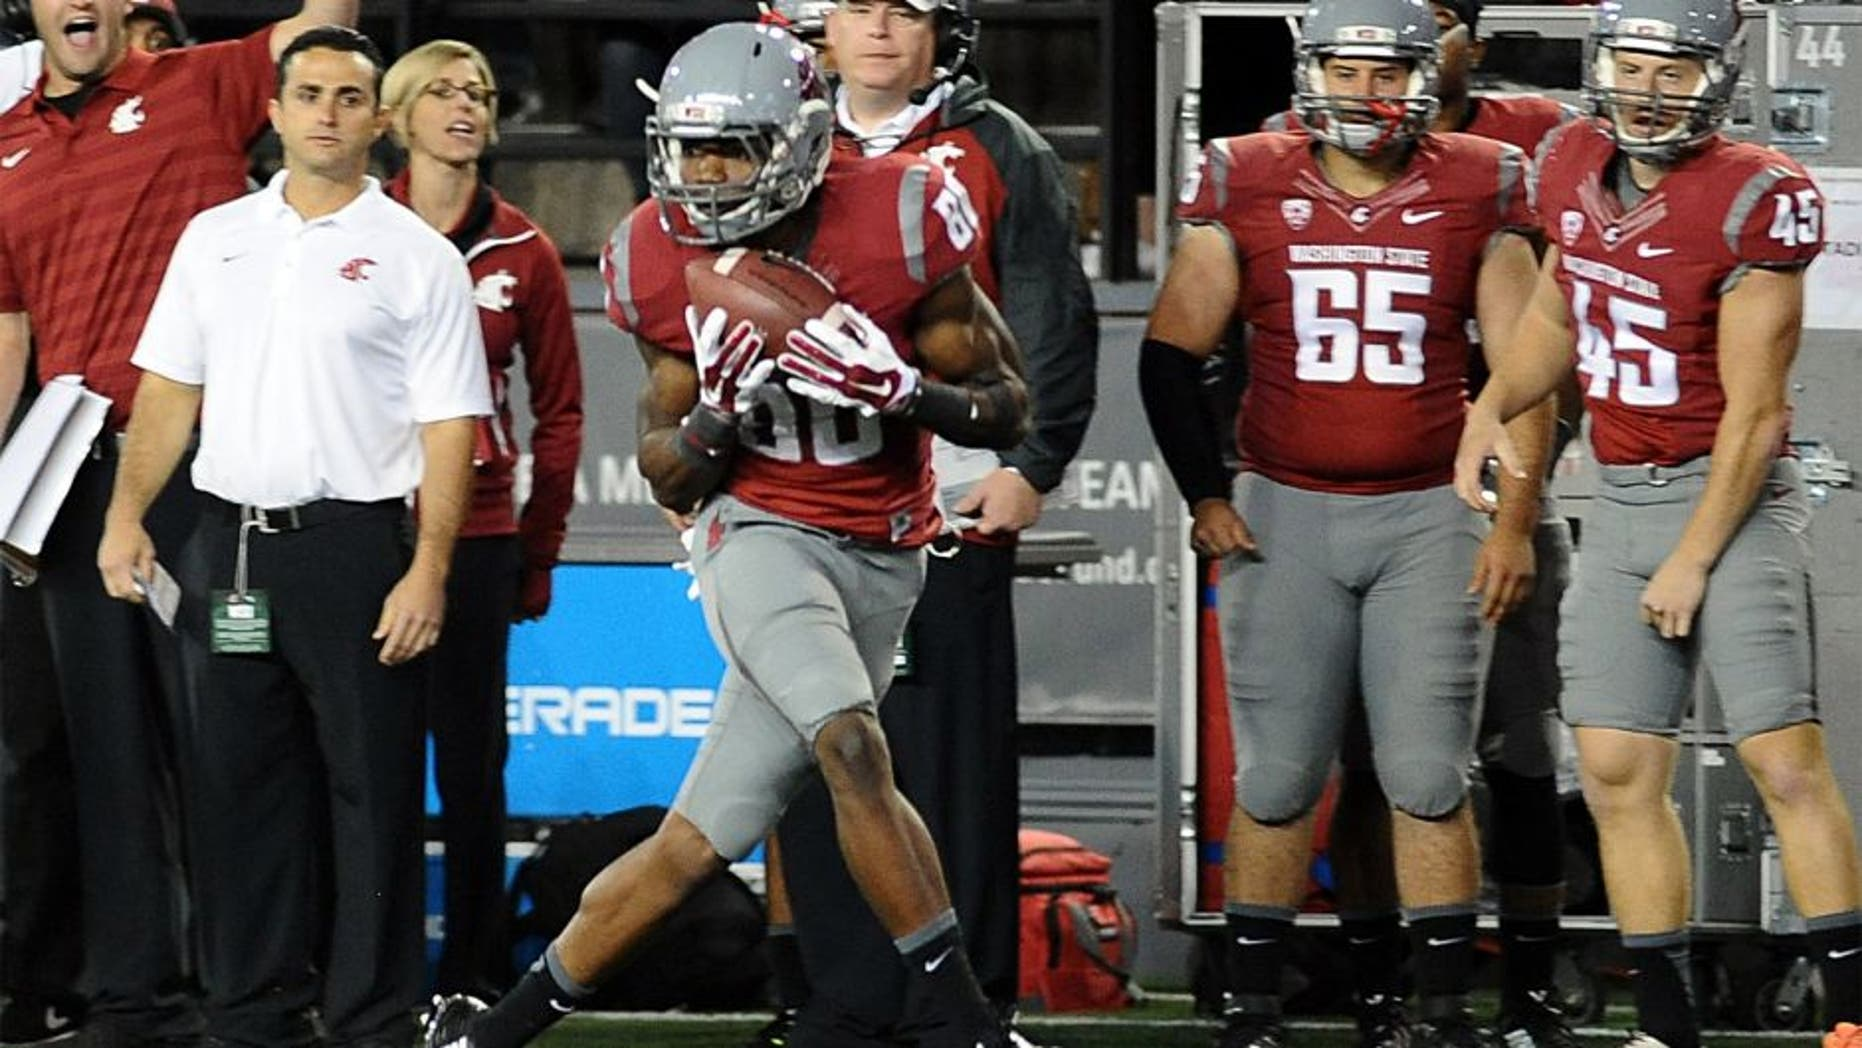 Sep 13, 2014; Pullman, WA, USA; Washington State Cougars wide receiver Dom Williams (80) makes a catch that would turn into a touchdown against the Portland State Vikings during the second half at Martin Stadium. The Cougar beat Vikings 59-21. Mandatory Credit: James Snook-USA TODAY Sports